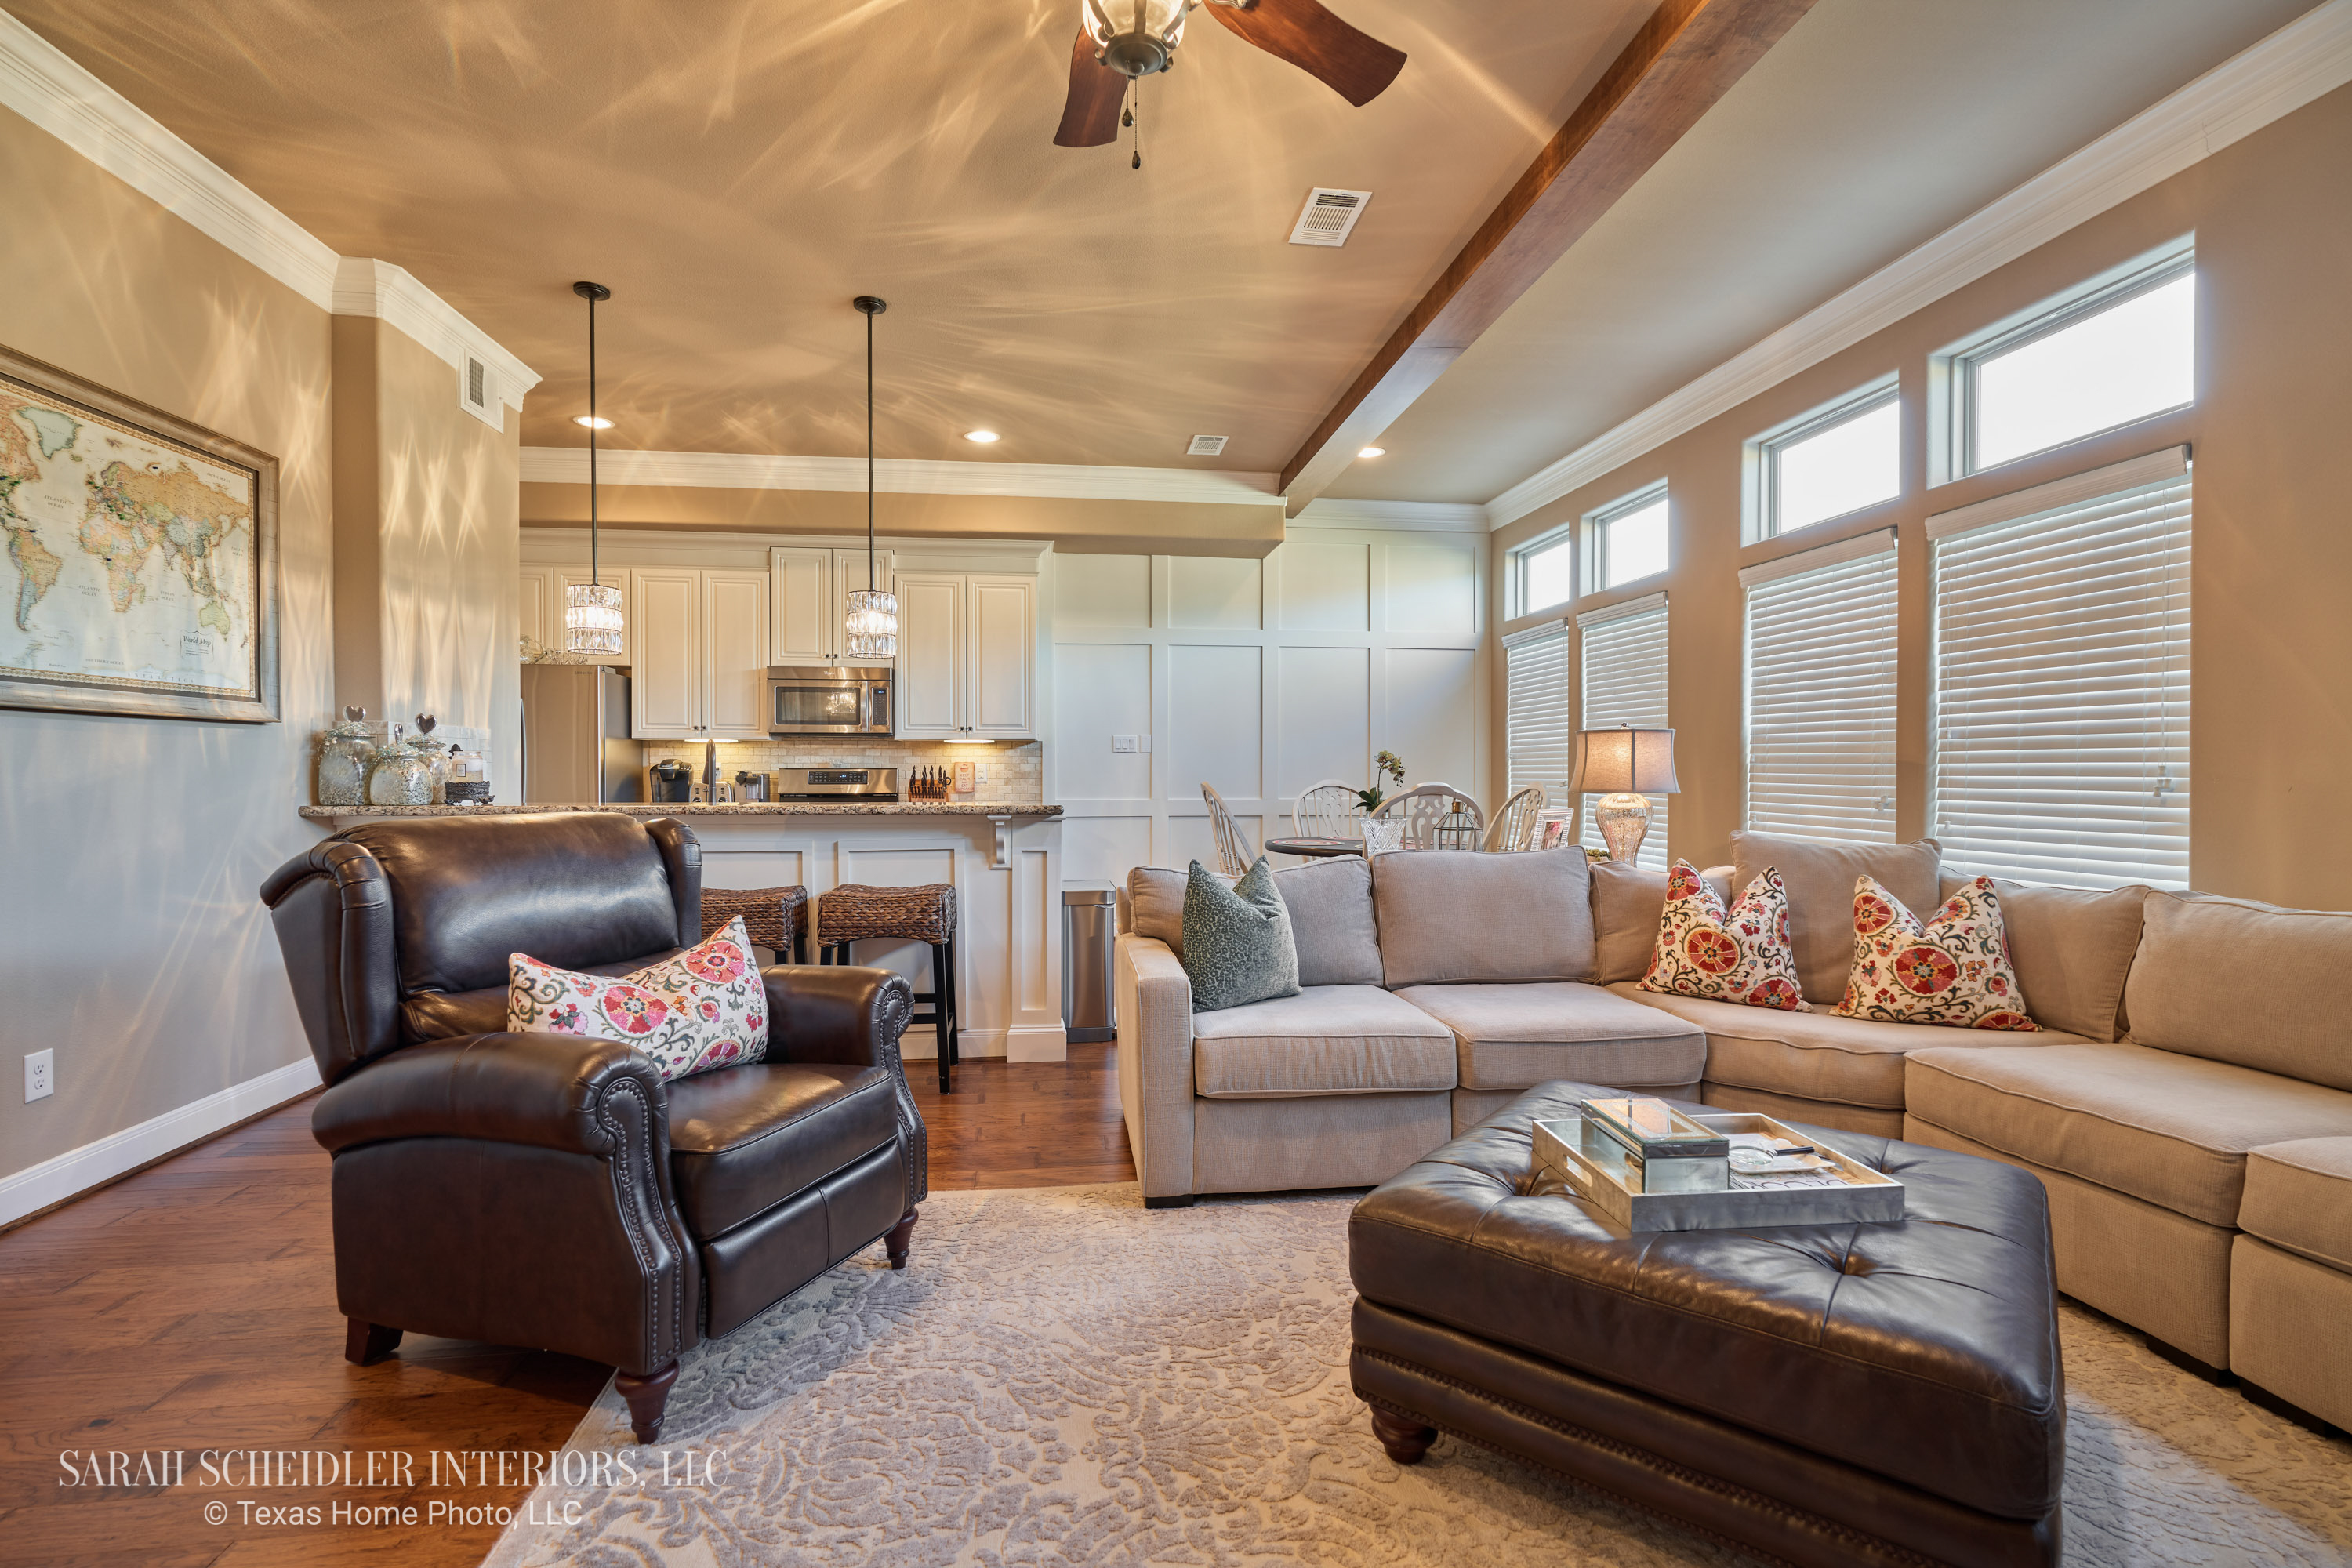 Open-Concept Living Room to White Kitchen Design